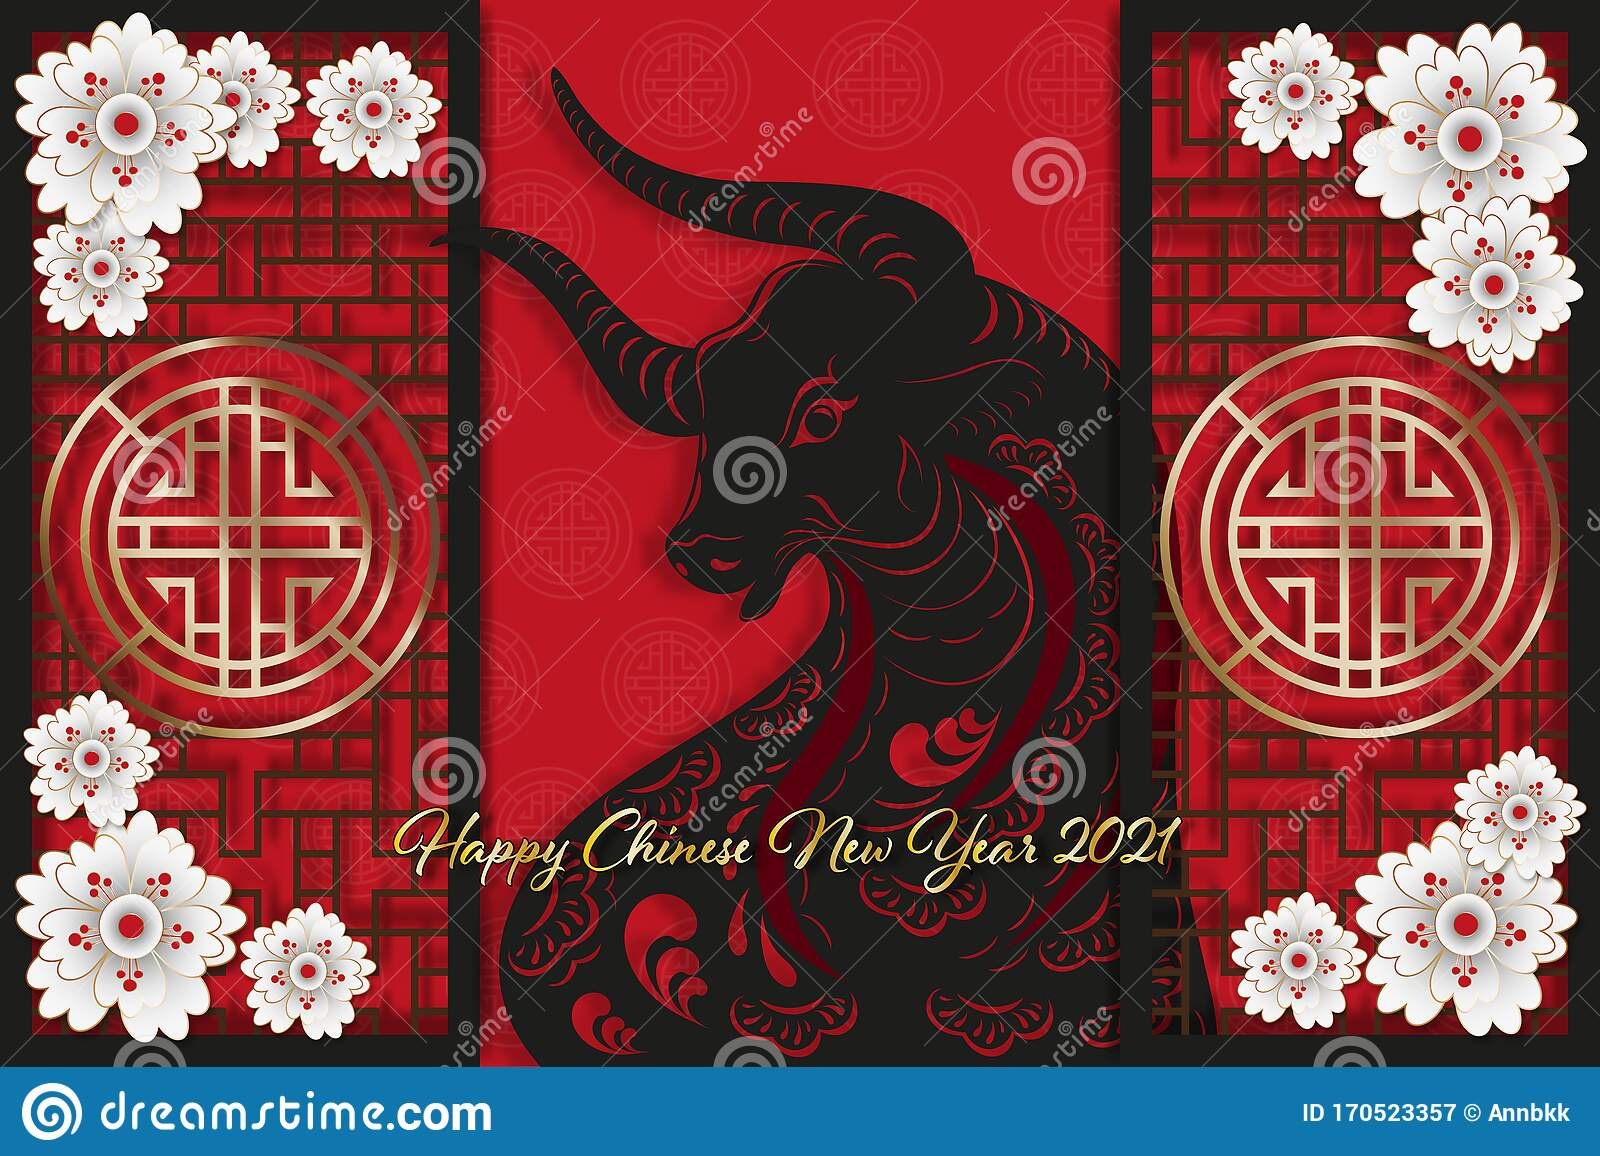 Paper Art Happy Chinese New Year 2021, Zodiac Sign, Year ...